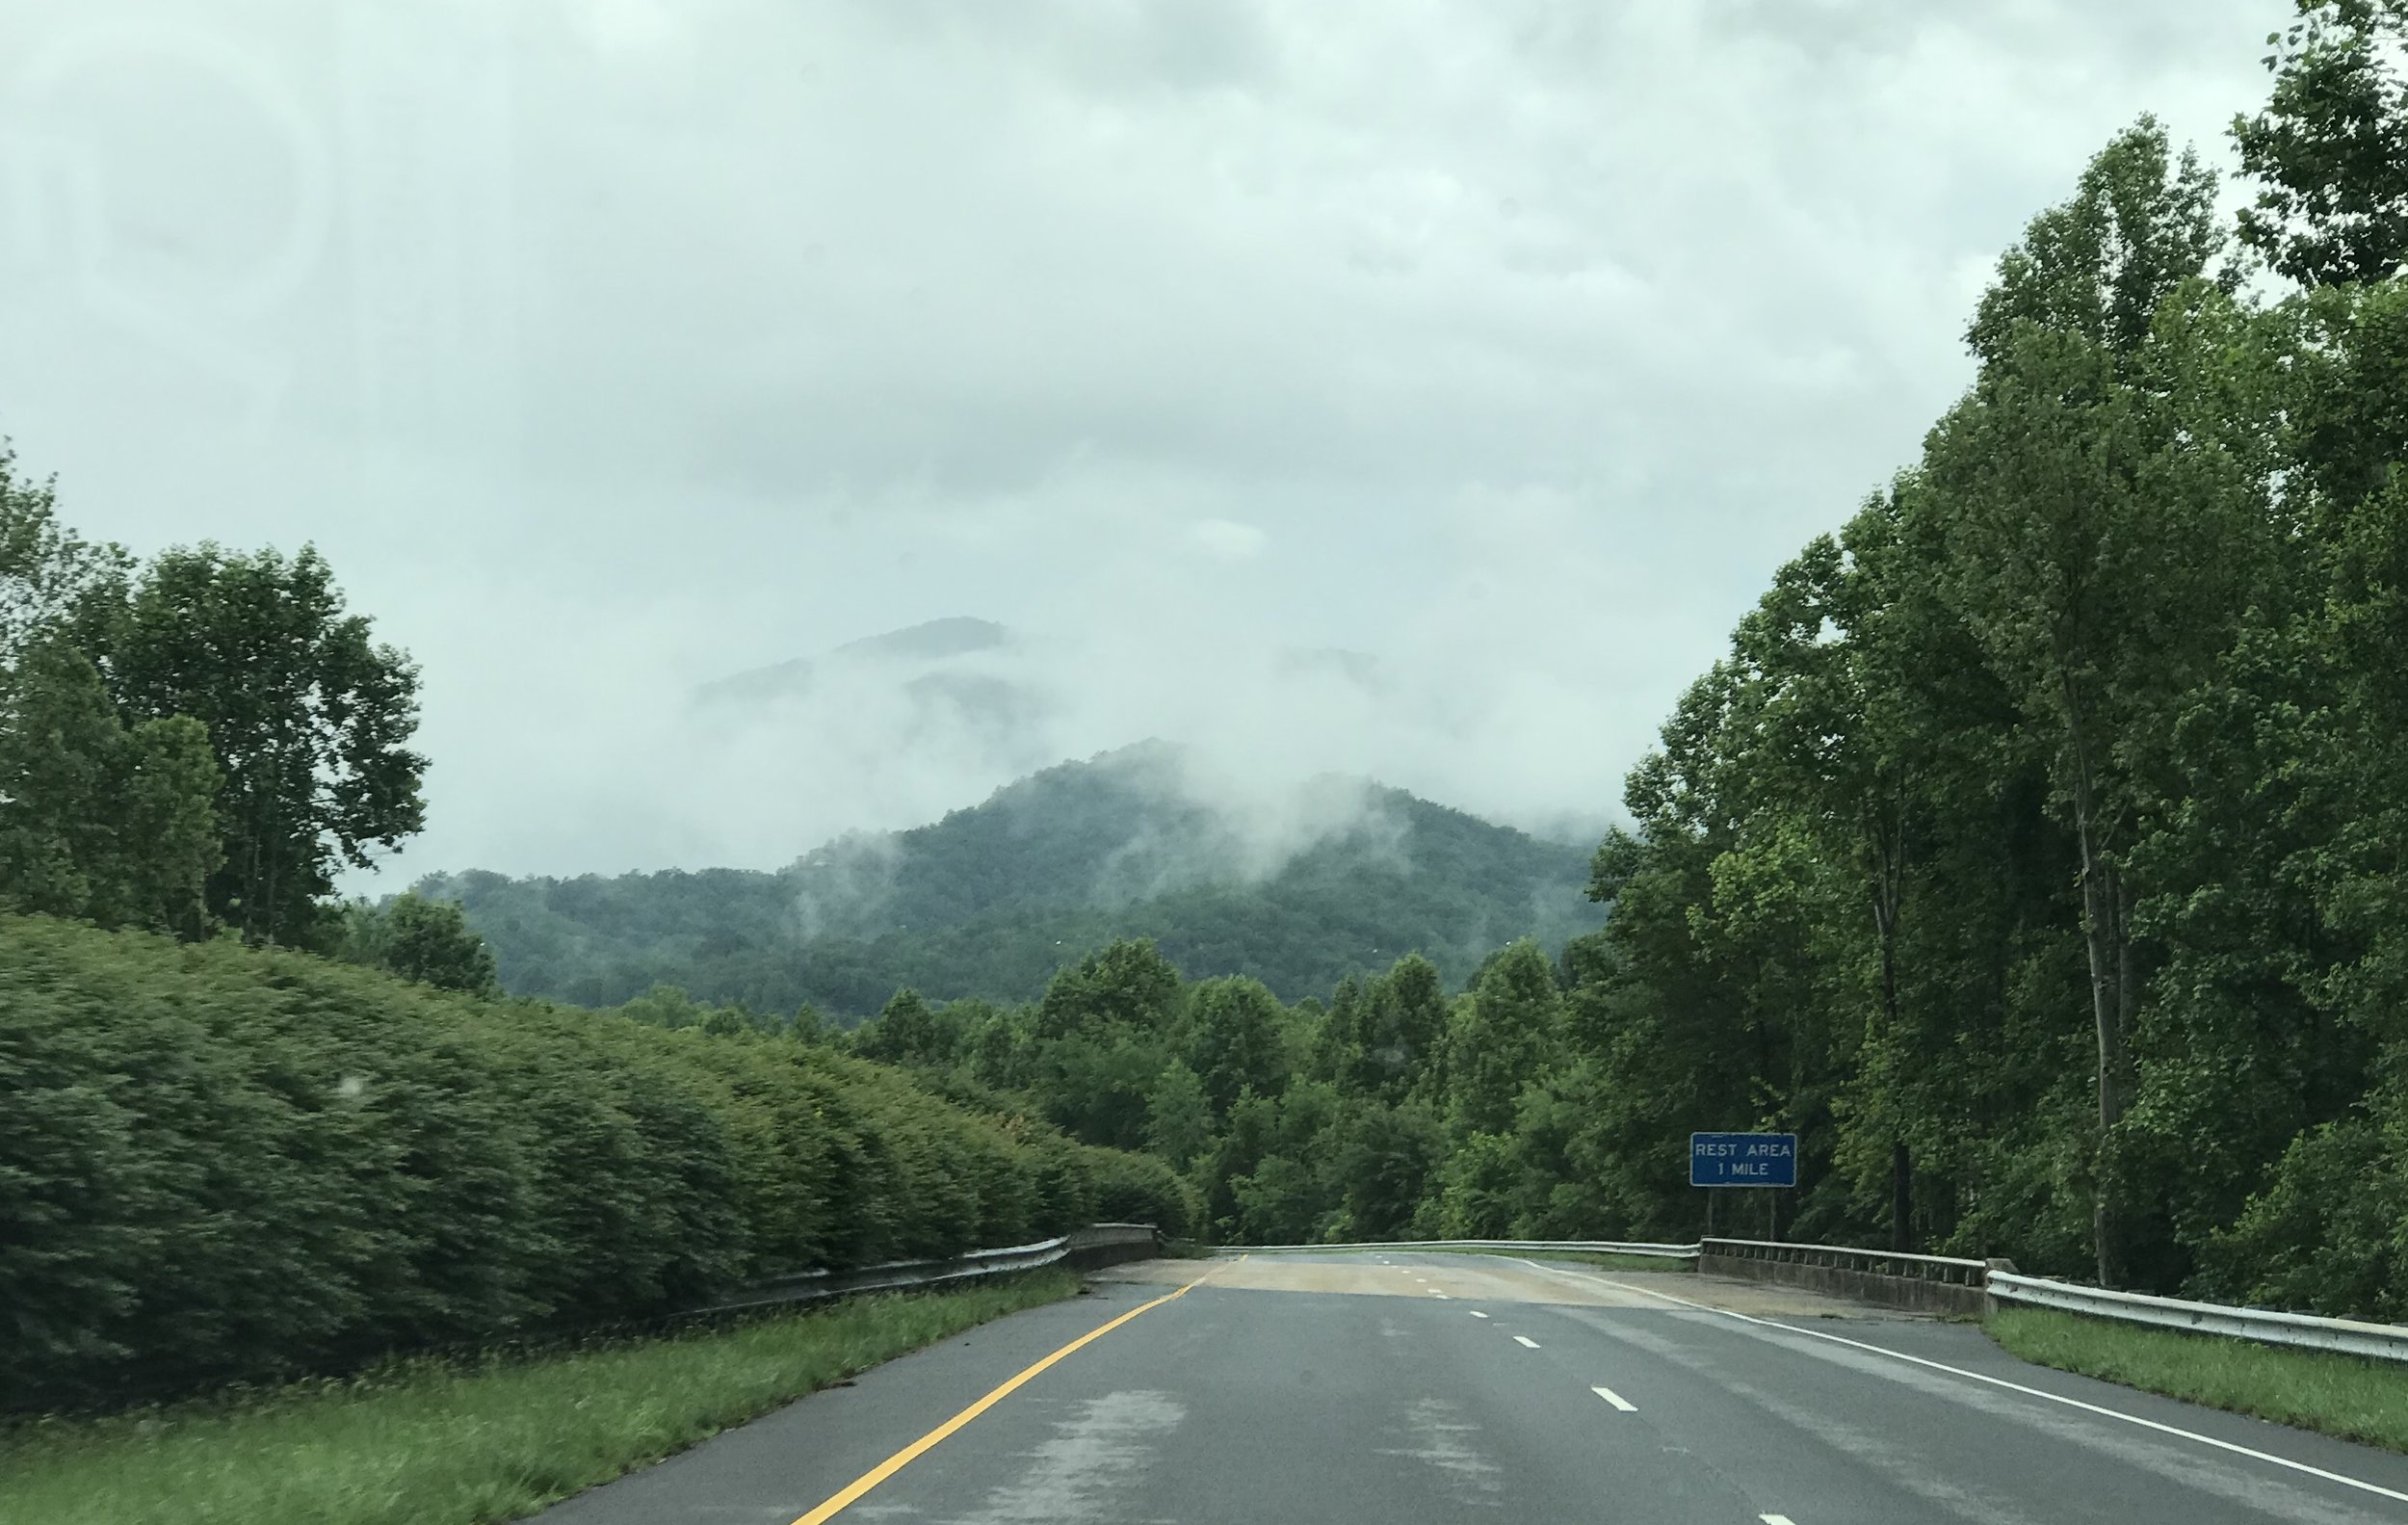 The drive home through the misty mountains of North Carolina